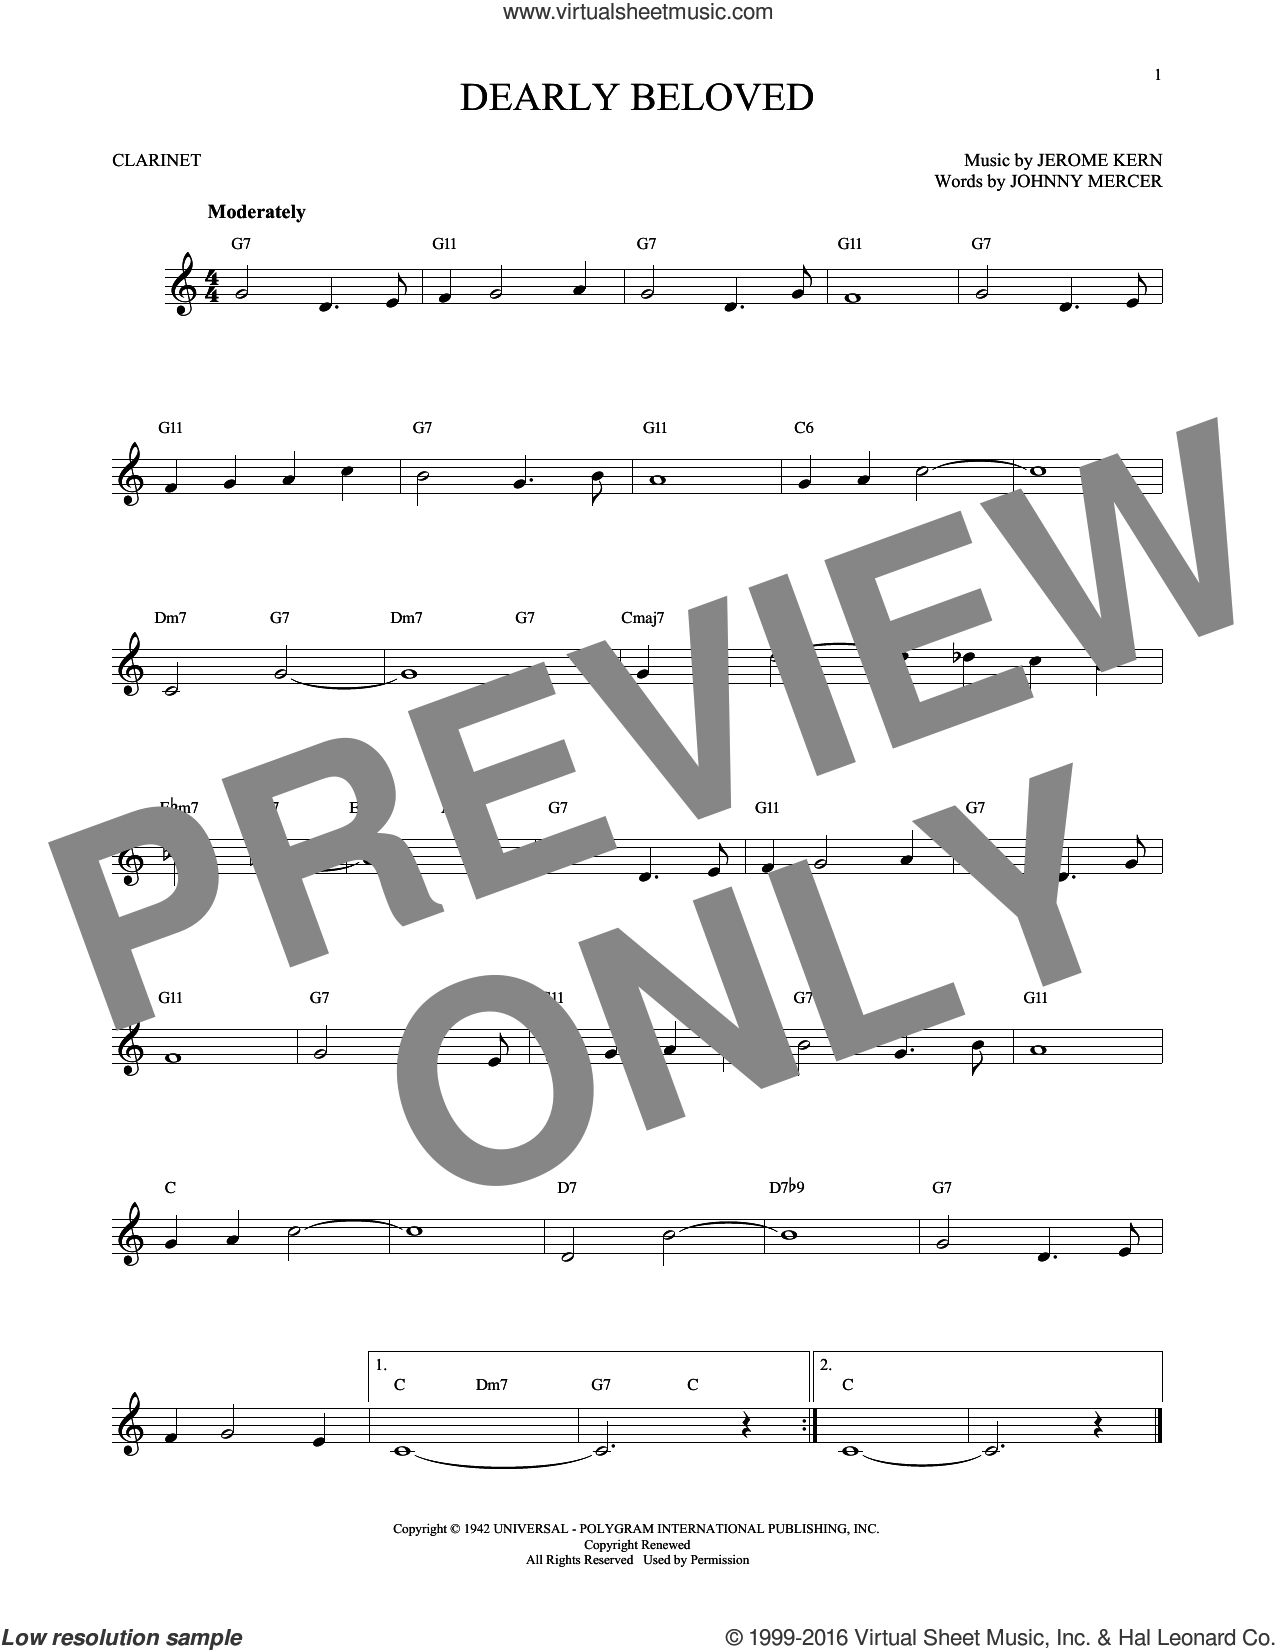 Dearly Beloved sheet music for clarinet solo by Jerome Kern and Johnny Mercer, intermediate skill level